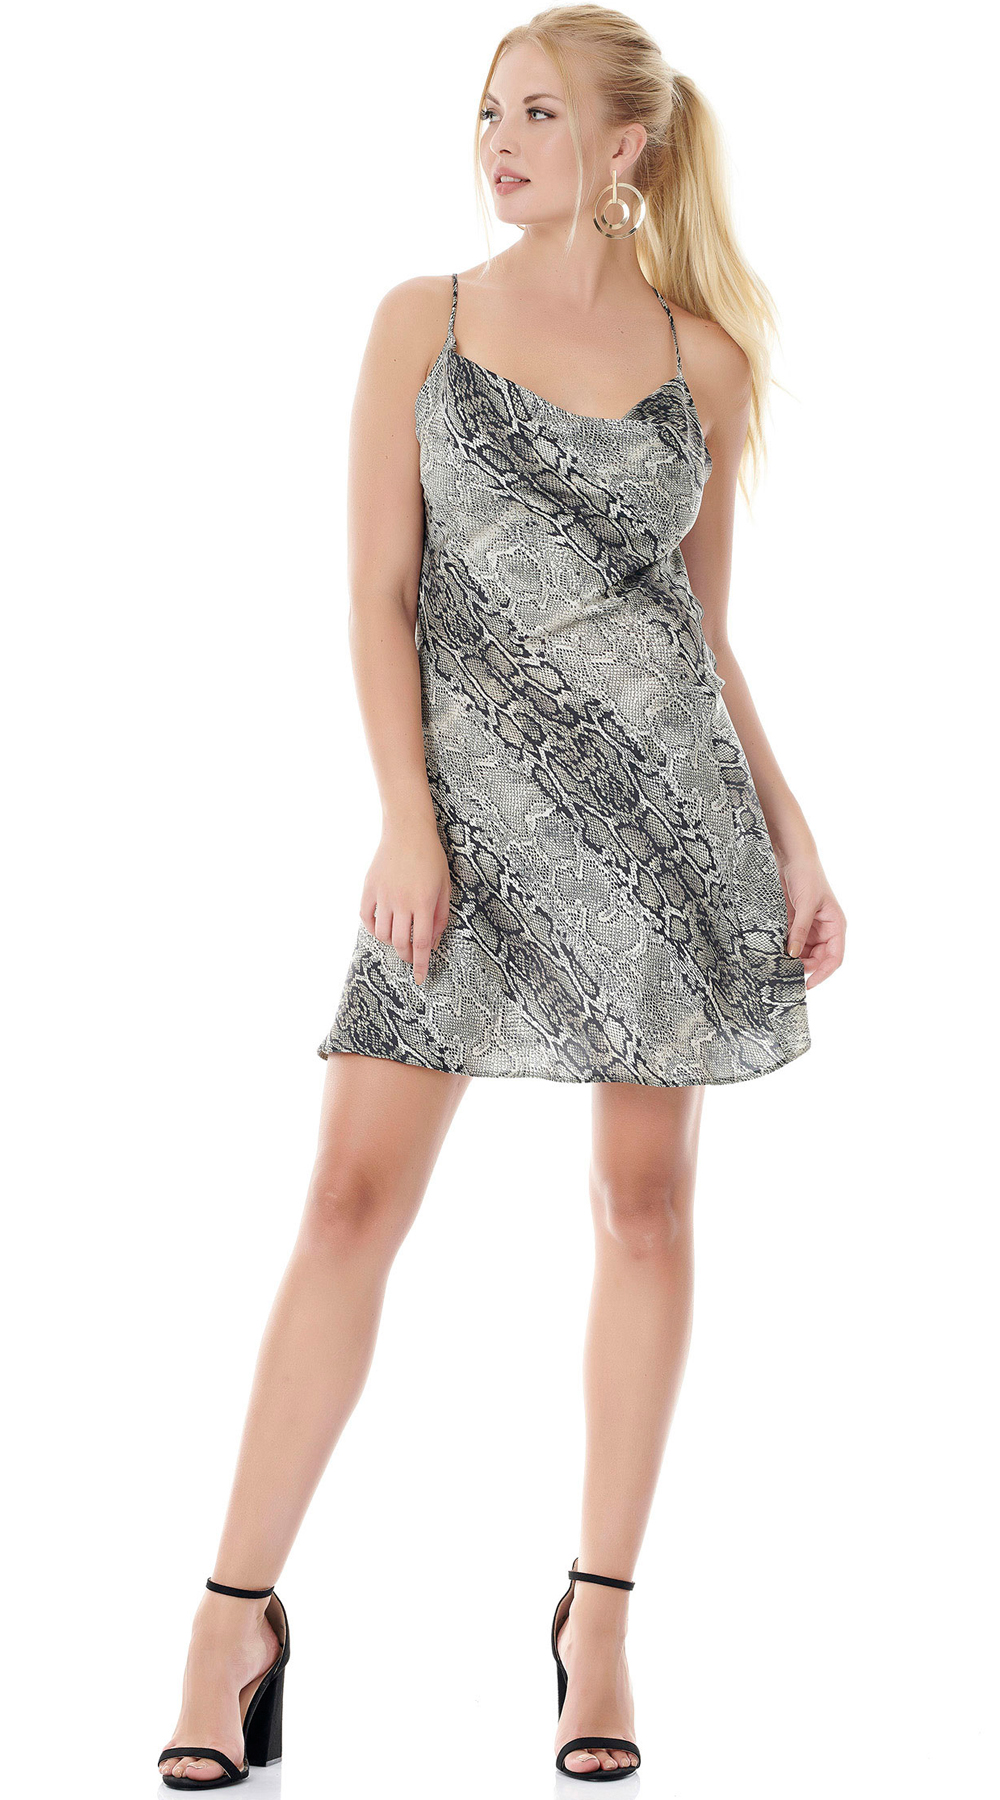 Snake Print Mini Φόρεμα Εξώπλατο ONLINE - ONLINE - FA18ON-56095 animal prints animal prints